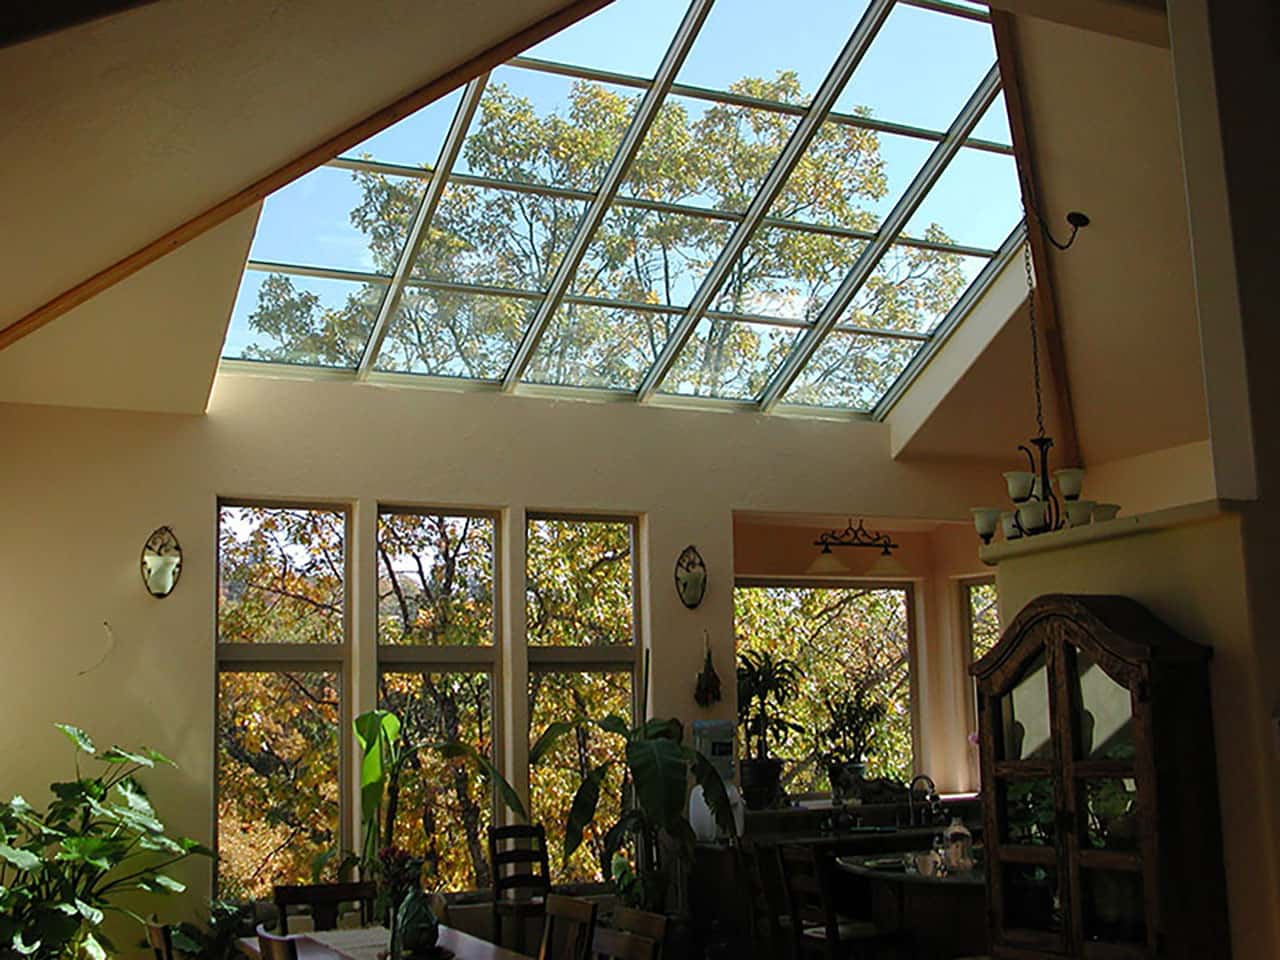 Skylight Installer in Vancouver WA